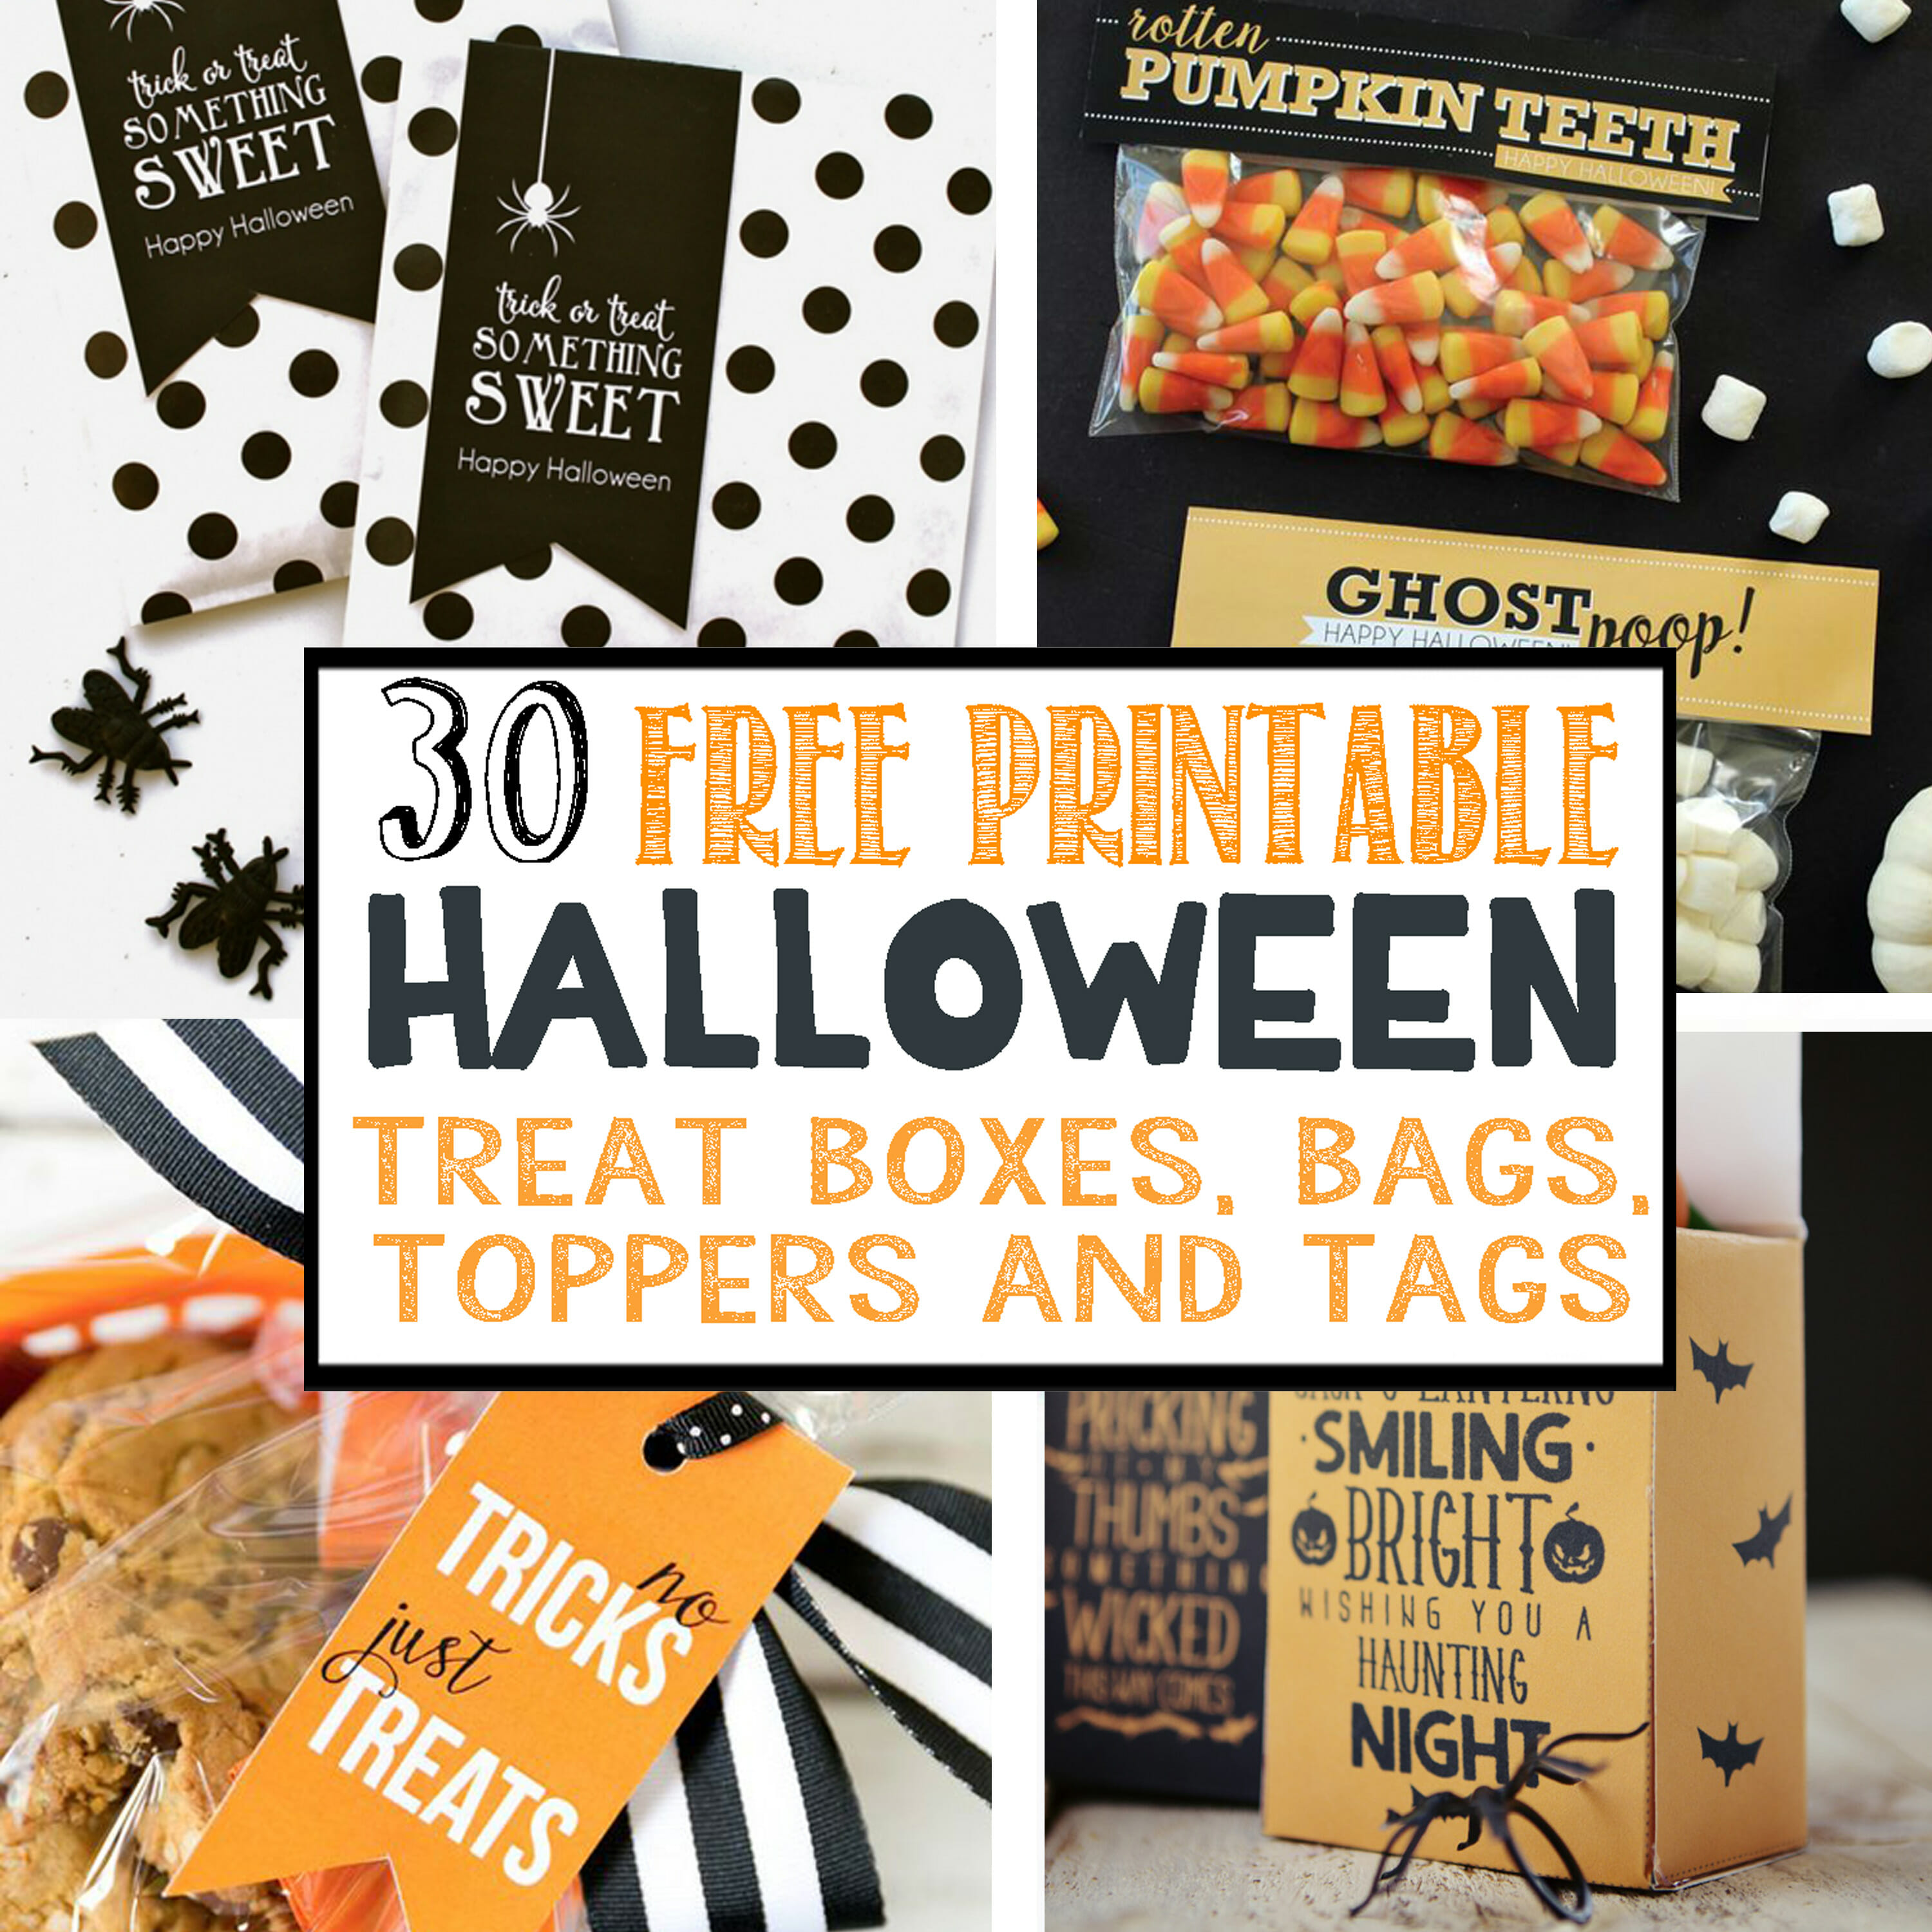 30 Free Printable Halloween Treat Boxes Bags Toppers And Tags